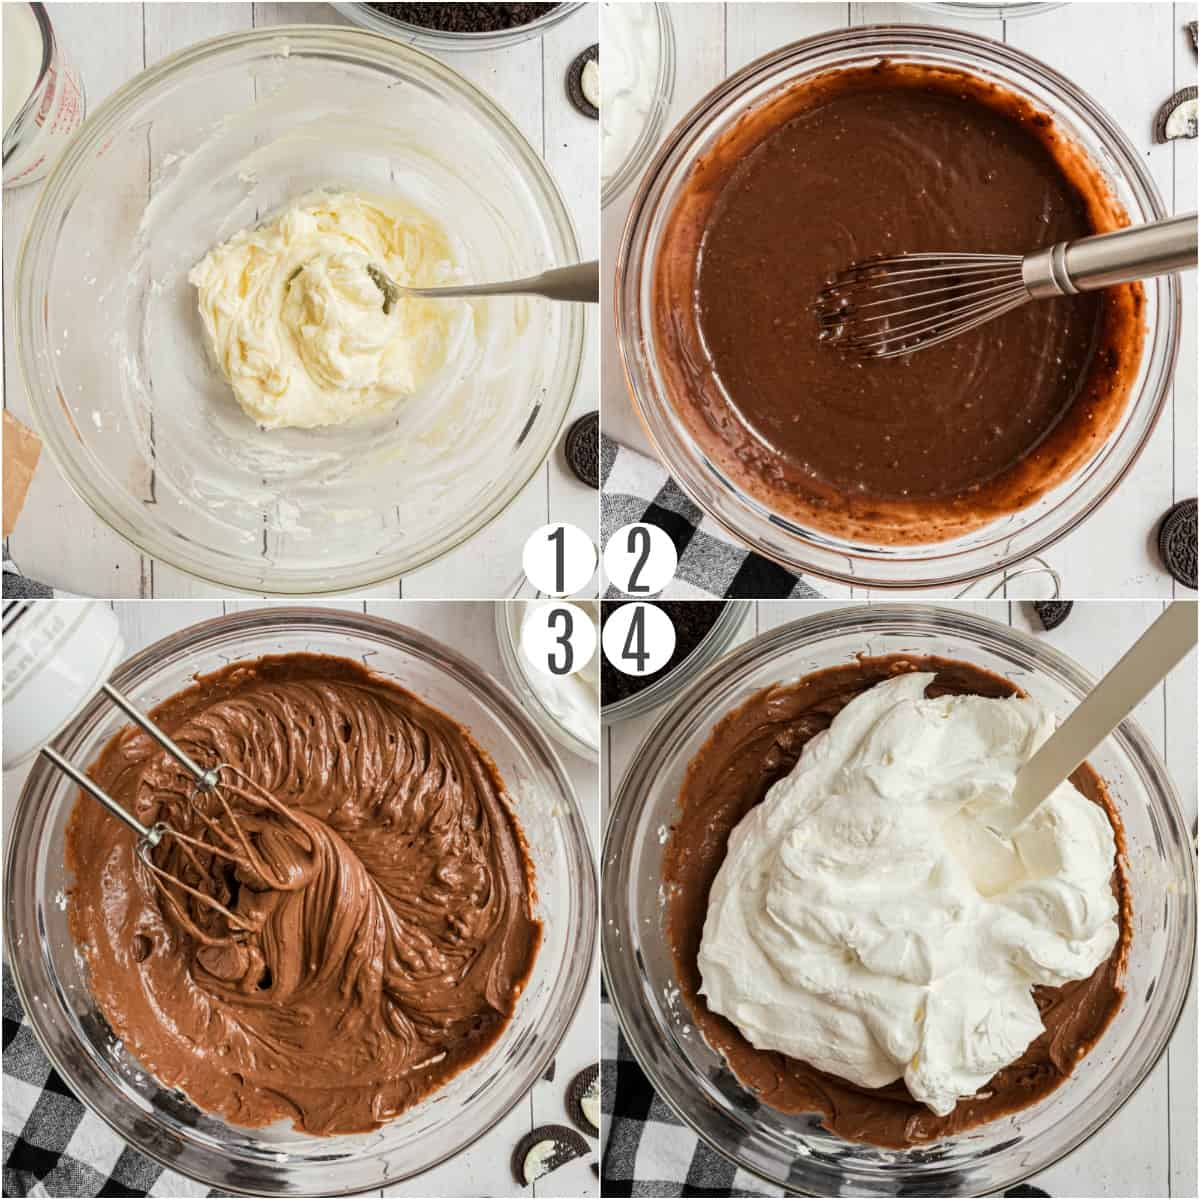 Step by step photos showing how to make dirt pudding cake.